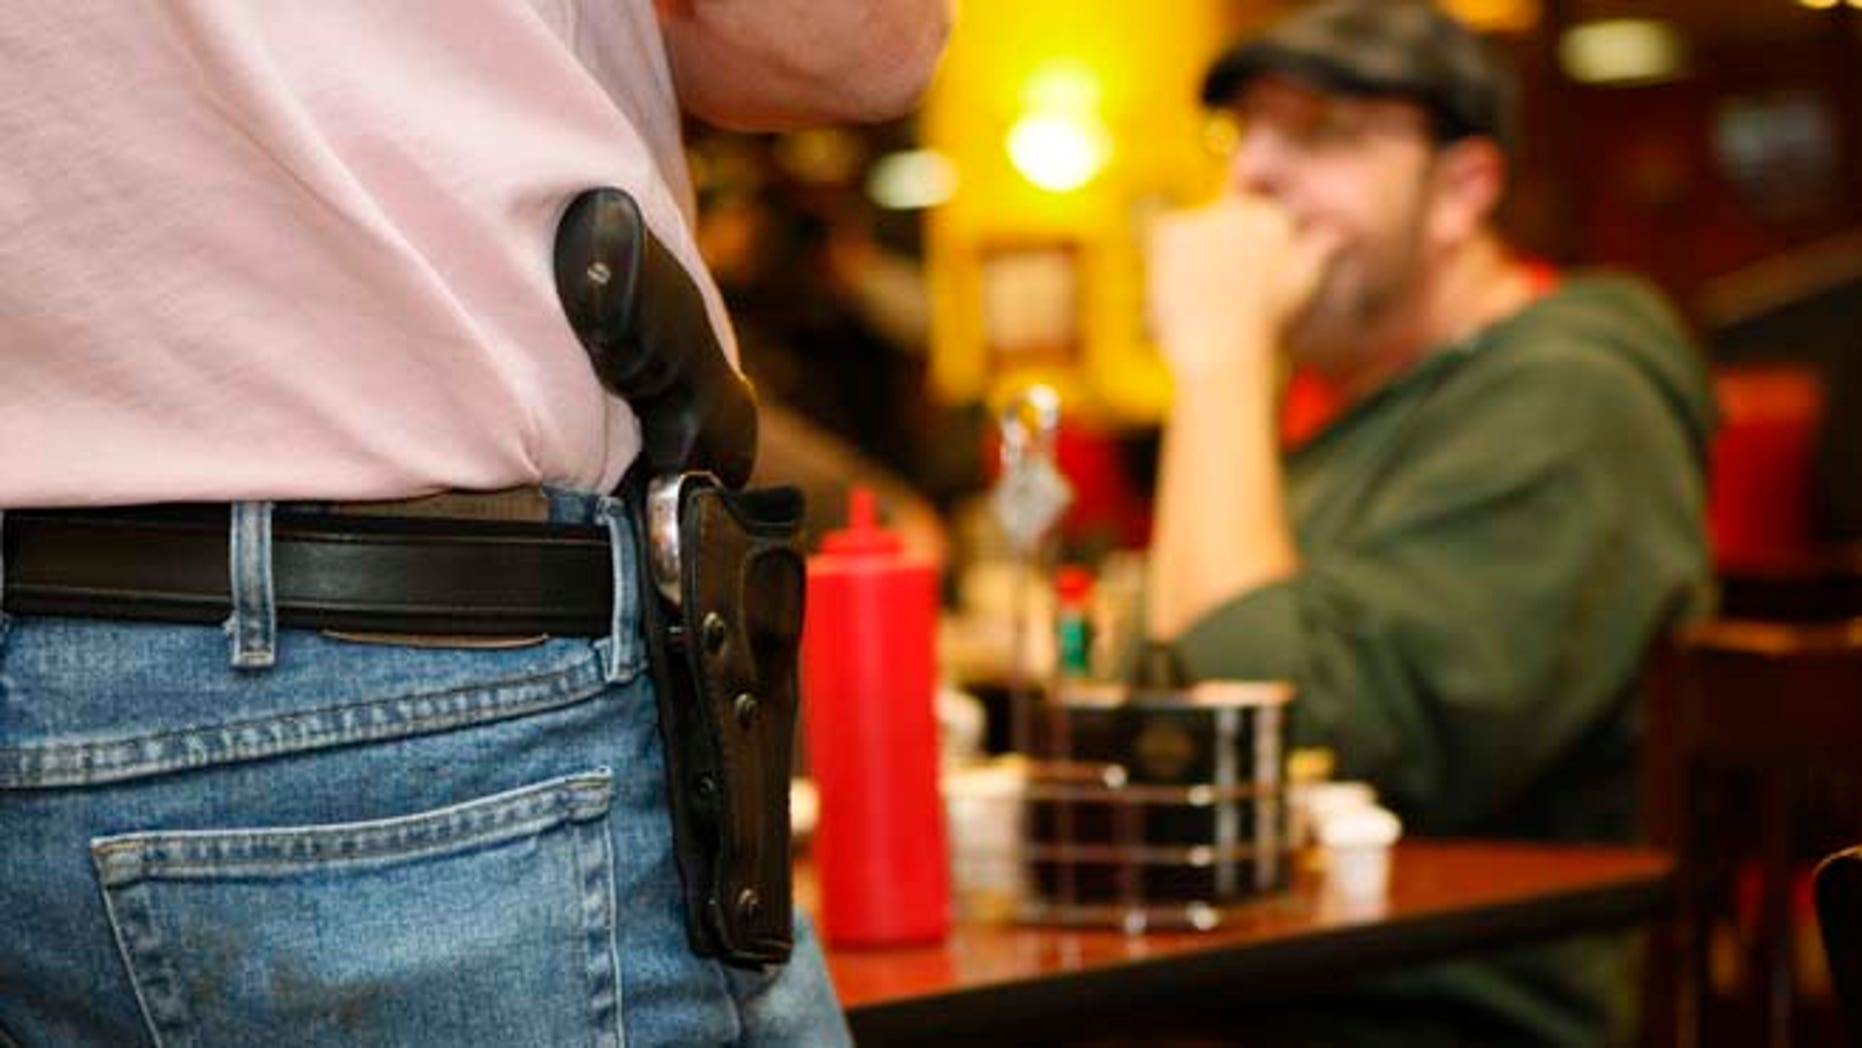 FILE: A man in Oklahoma wears an unconcealed side arm. The Texas House of Representatives on Friday voted 96-35 to allow residents with concealed-handgun licenses to openly carry their guns in public in holsters.